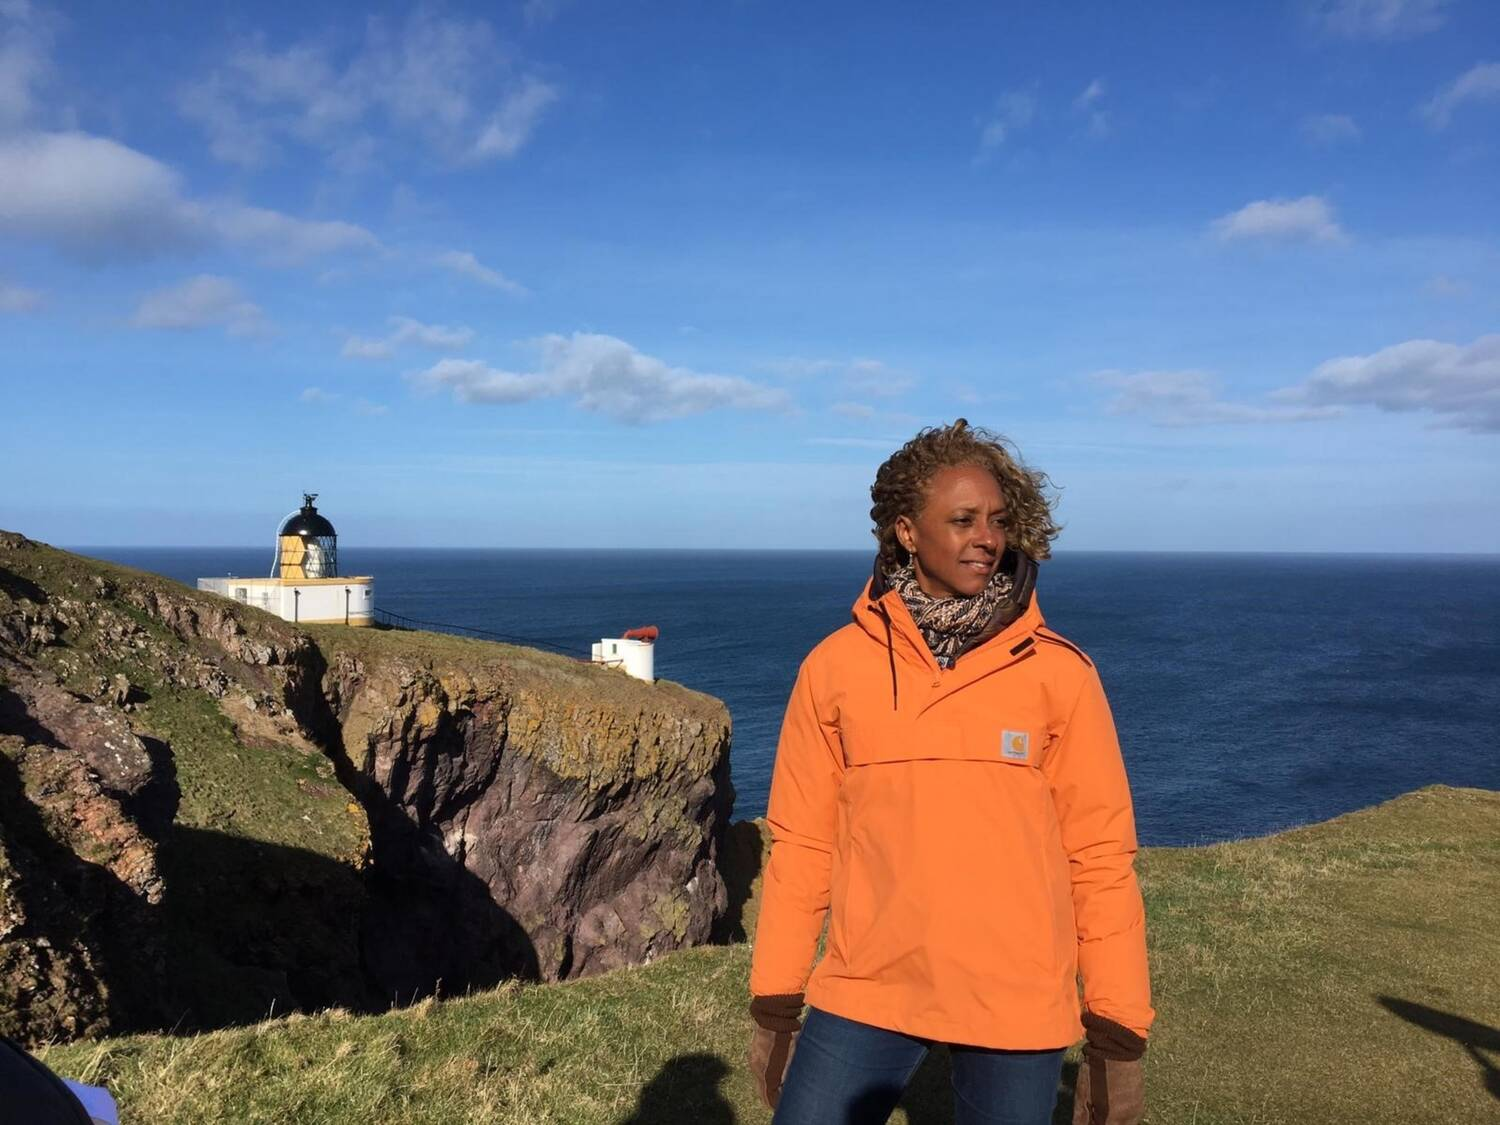 Gillian stands on the cliffs at St Abb's Head wearing a bright orange jacket. The lighthouse is in the background. The sky and sea are deep blue.